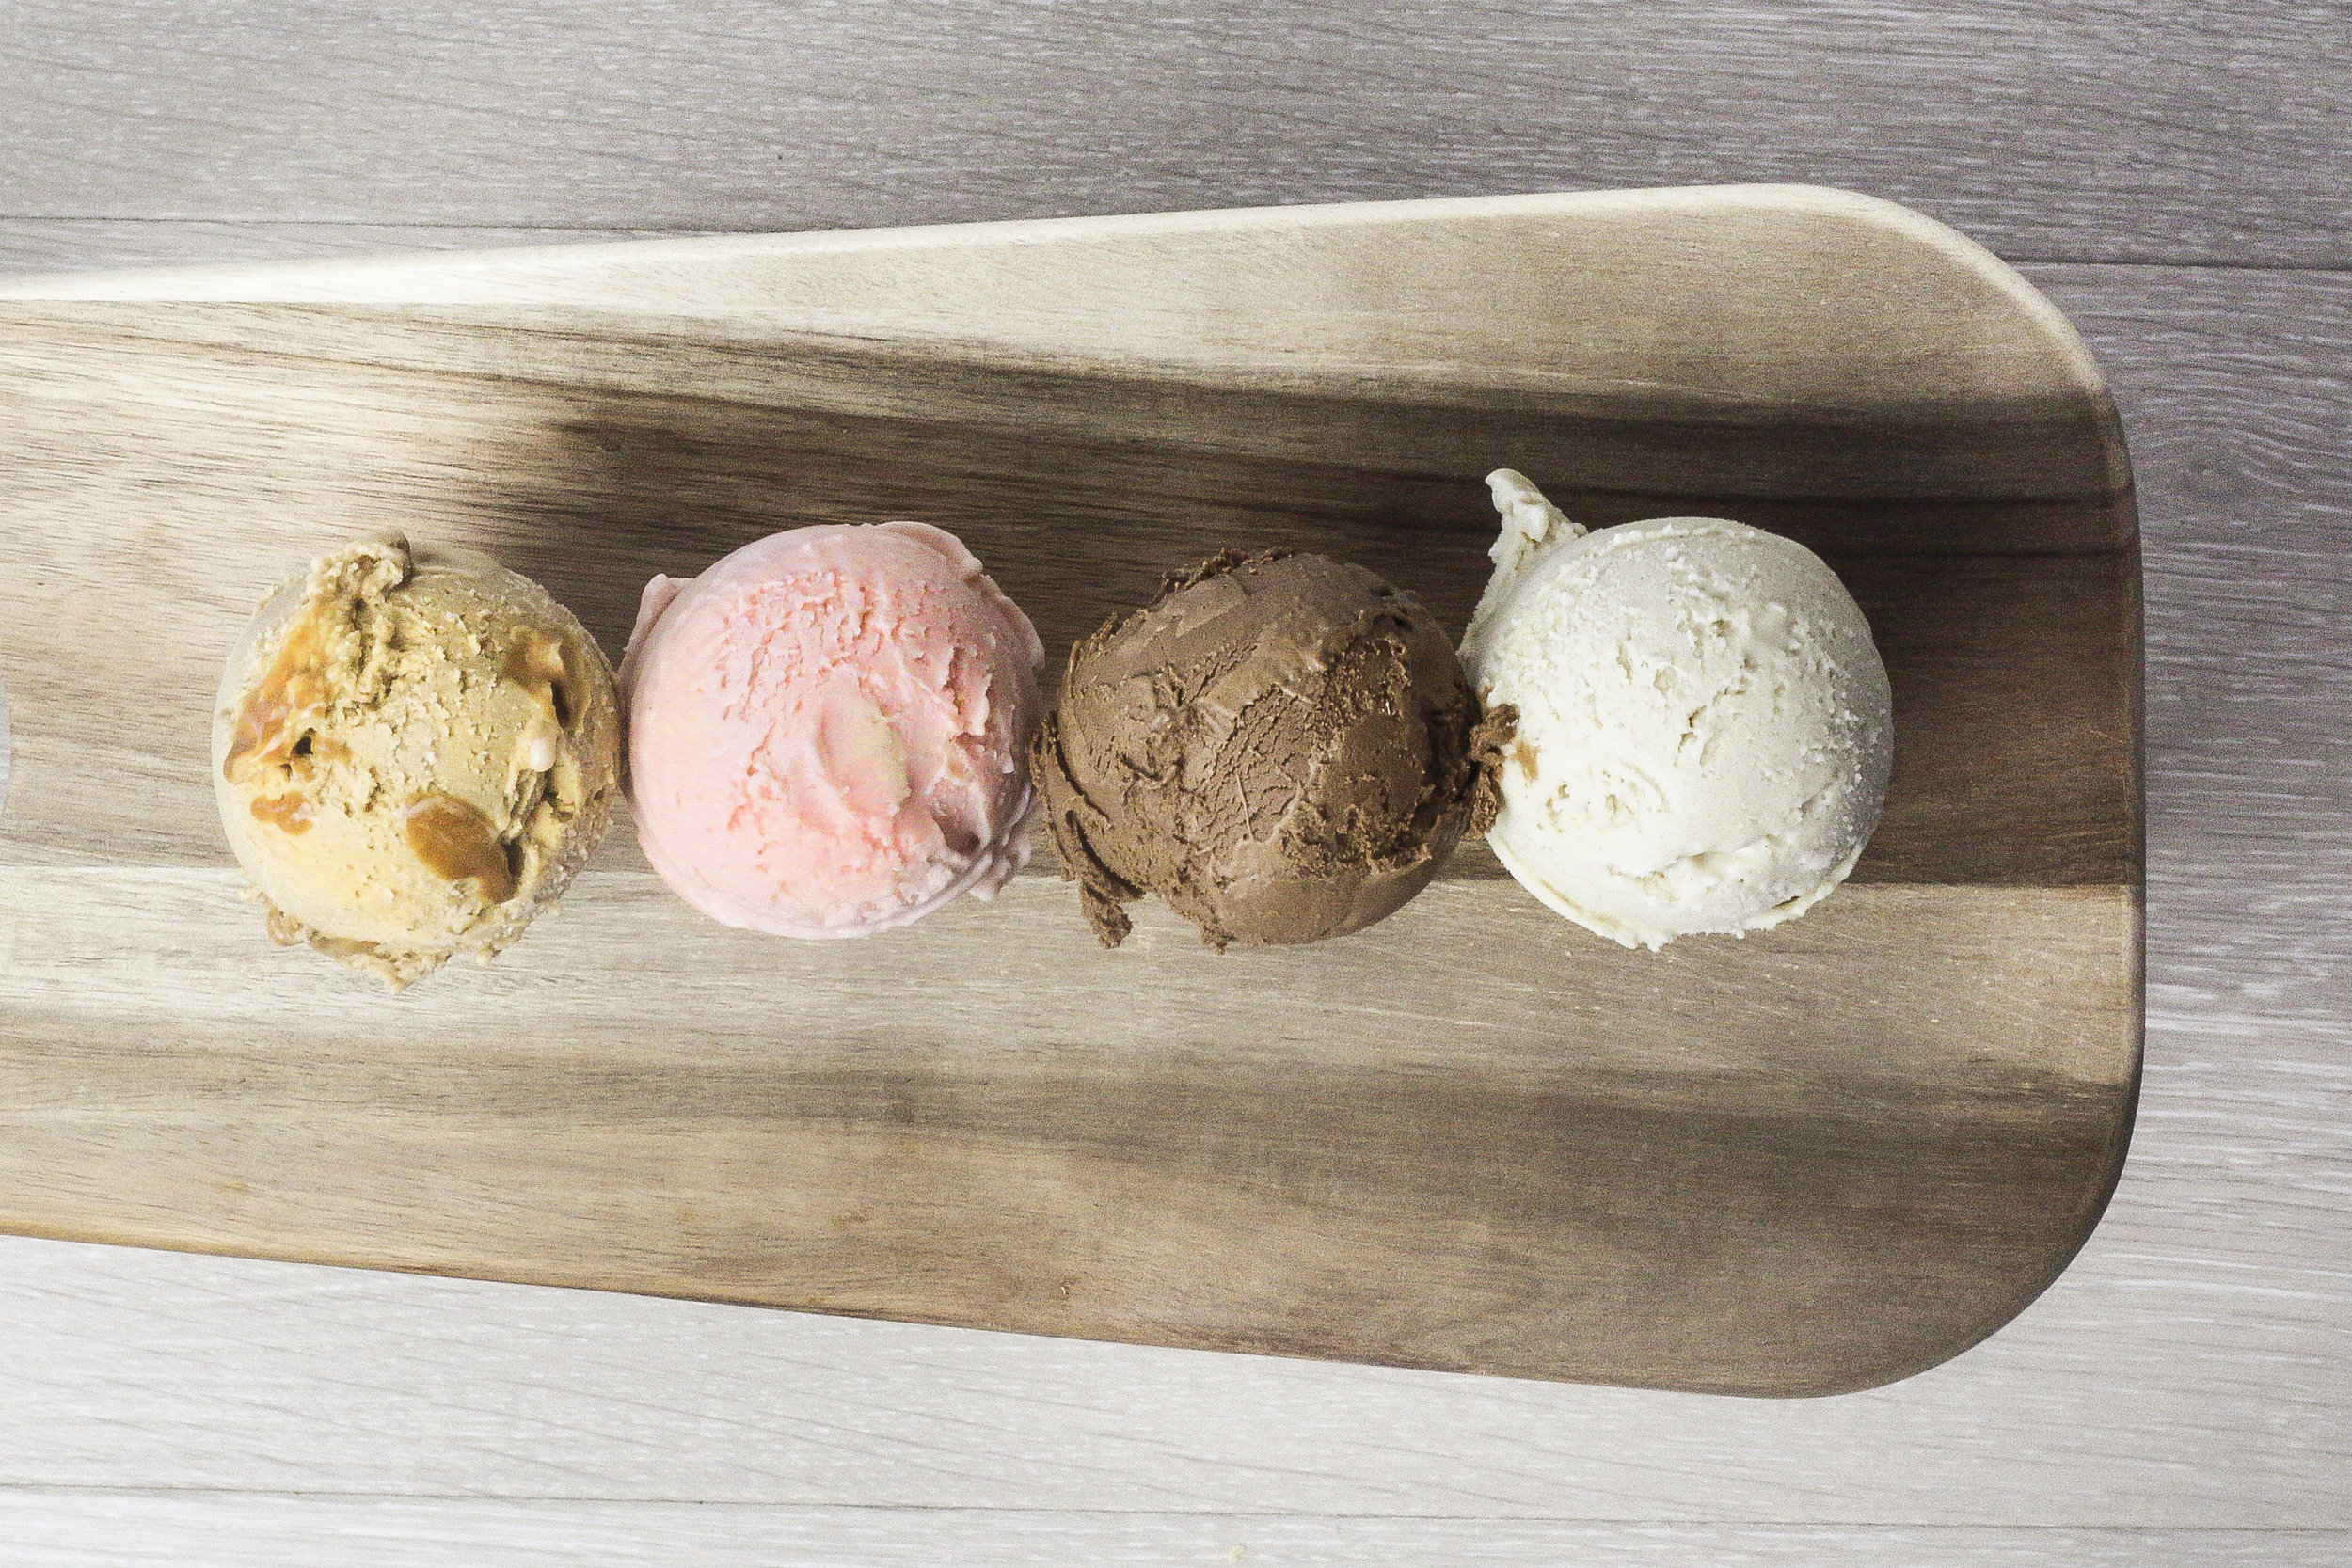 CONTACT US - If you have a question, are interested in stocking our yummy ice cream or have any feedback for us, we would love to hear from you!